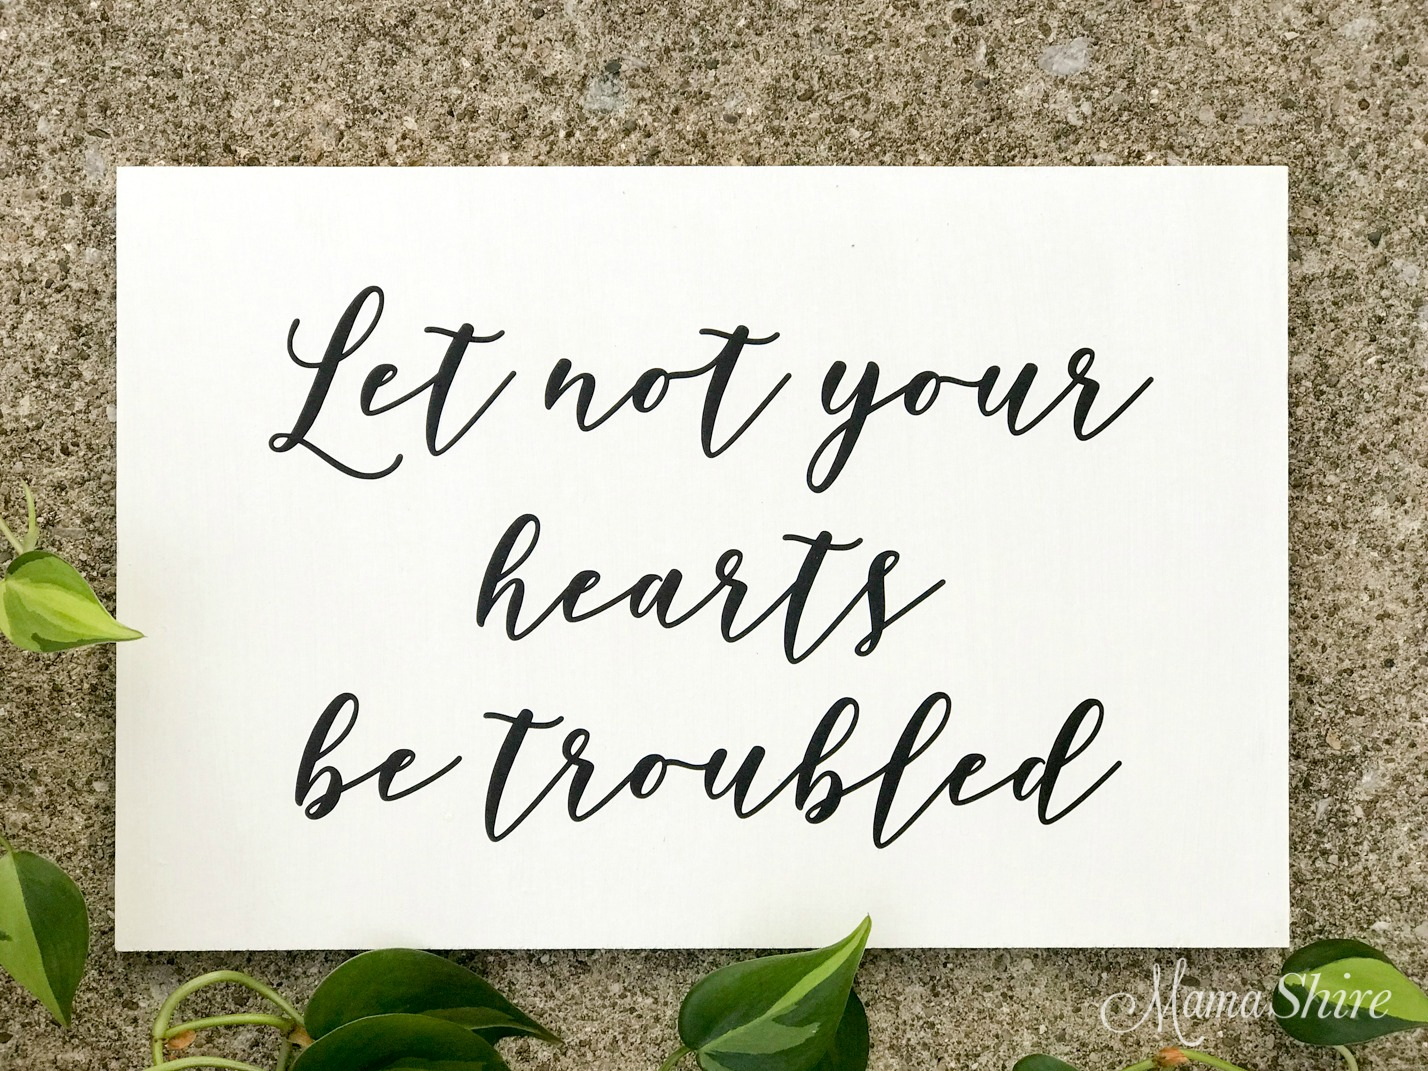 Let not your heart be troubled wood sign.